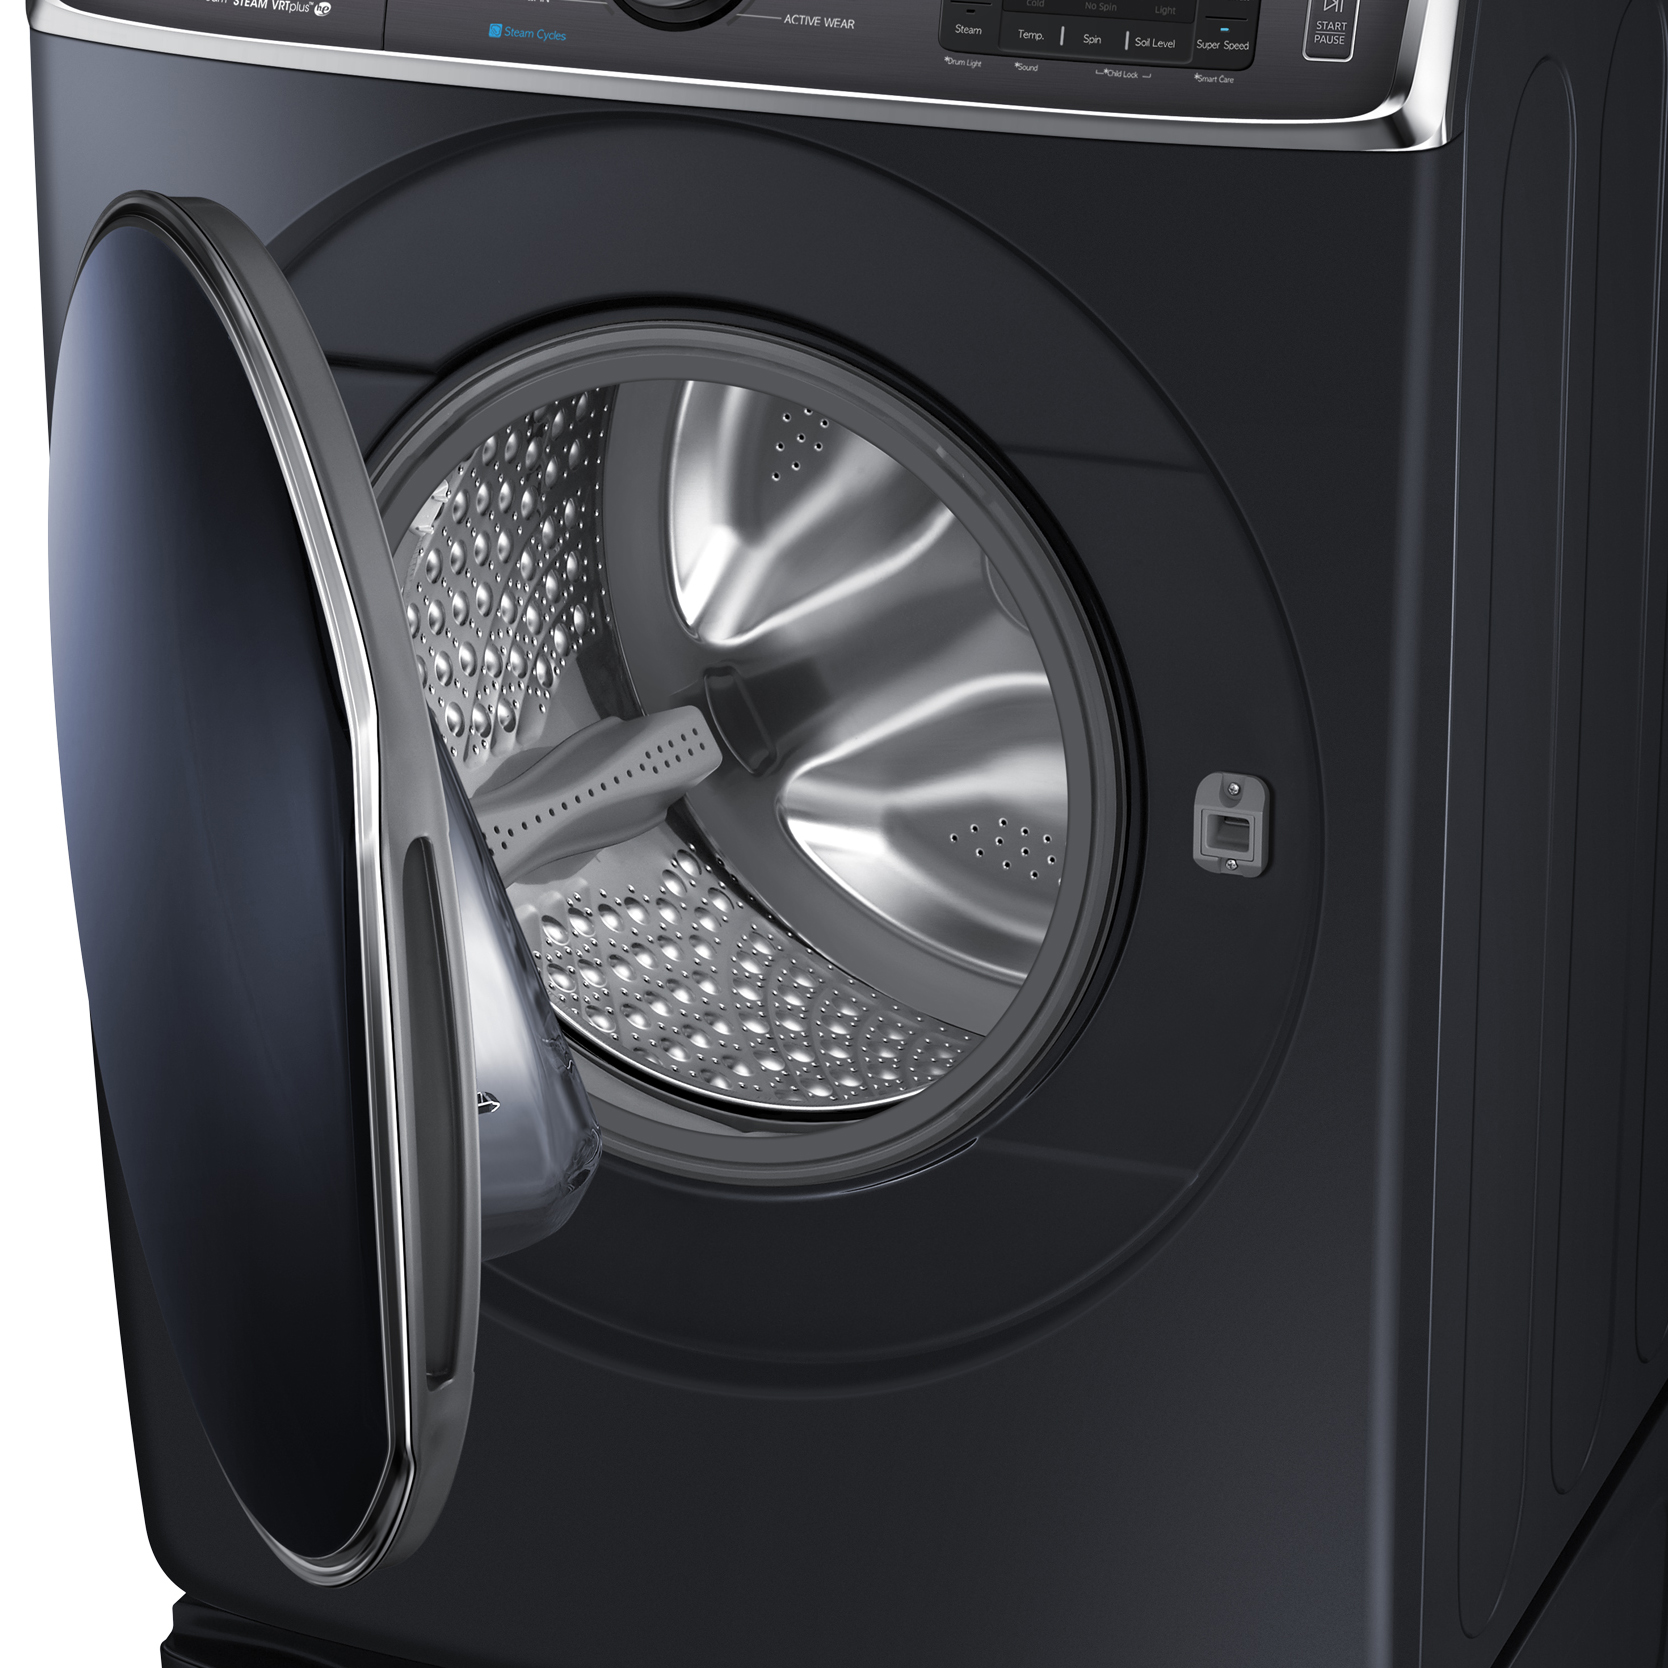 Samsung WF56H9100AG 5.6 cu. ft. Front-Load Washer - Onyx